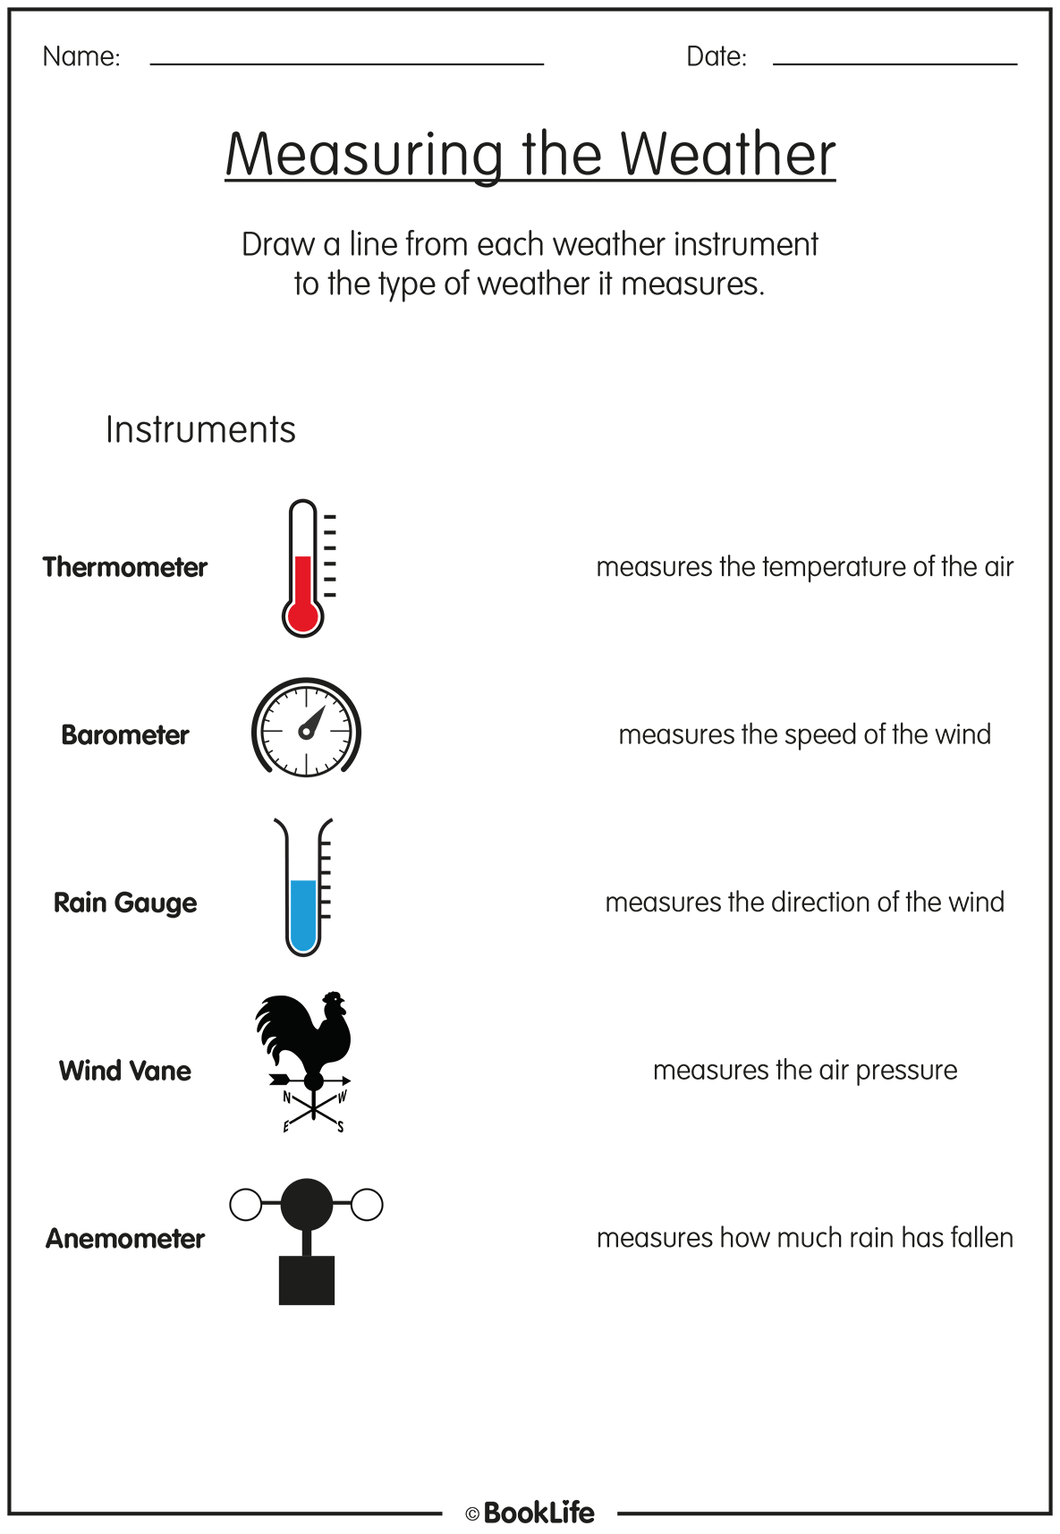 Measuring the Weather by BookLife